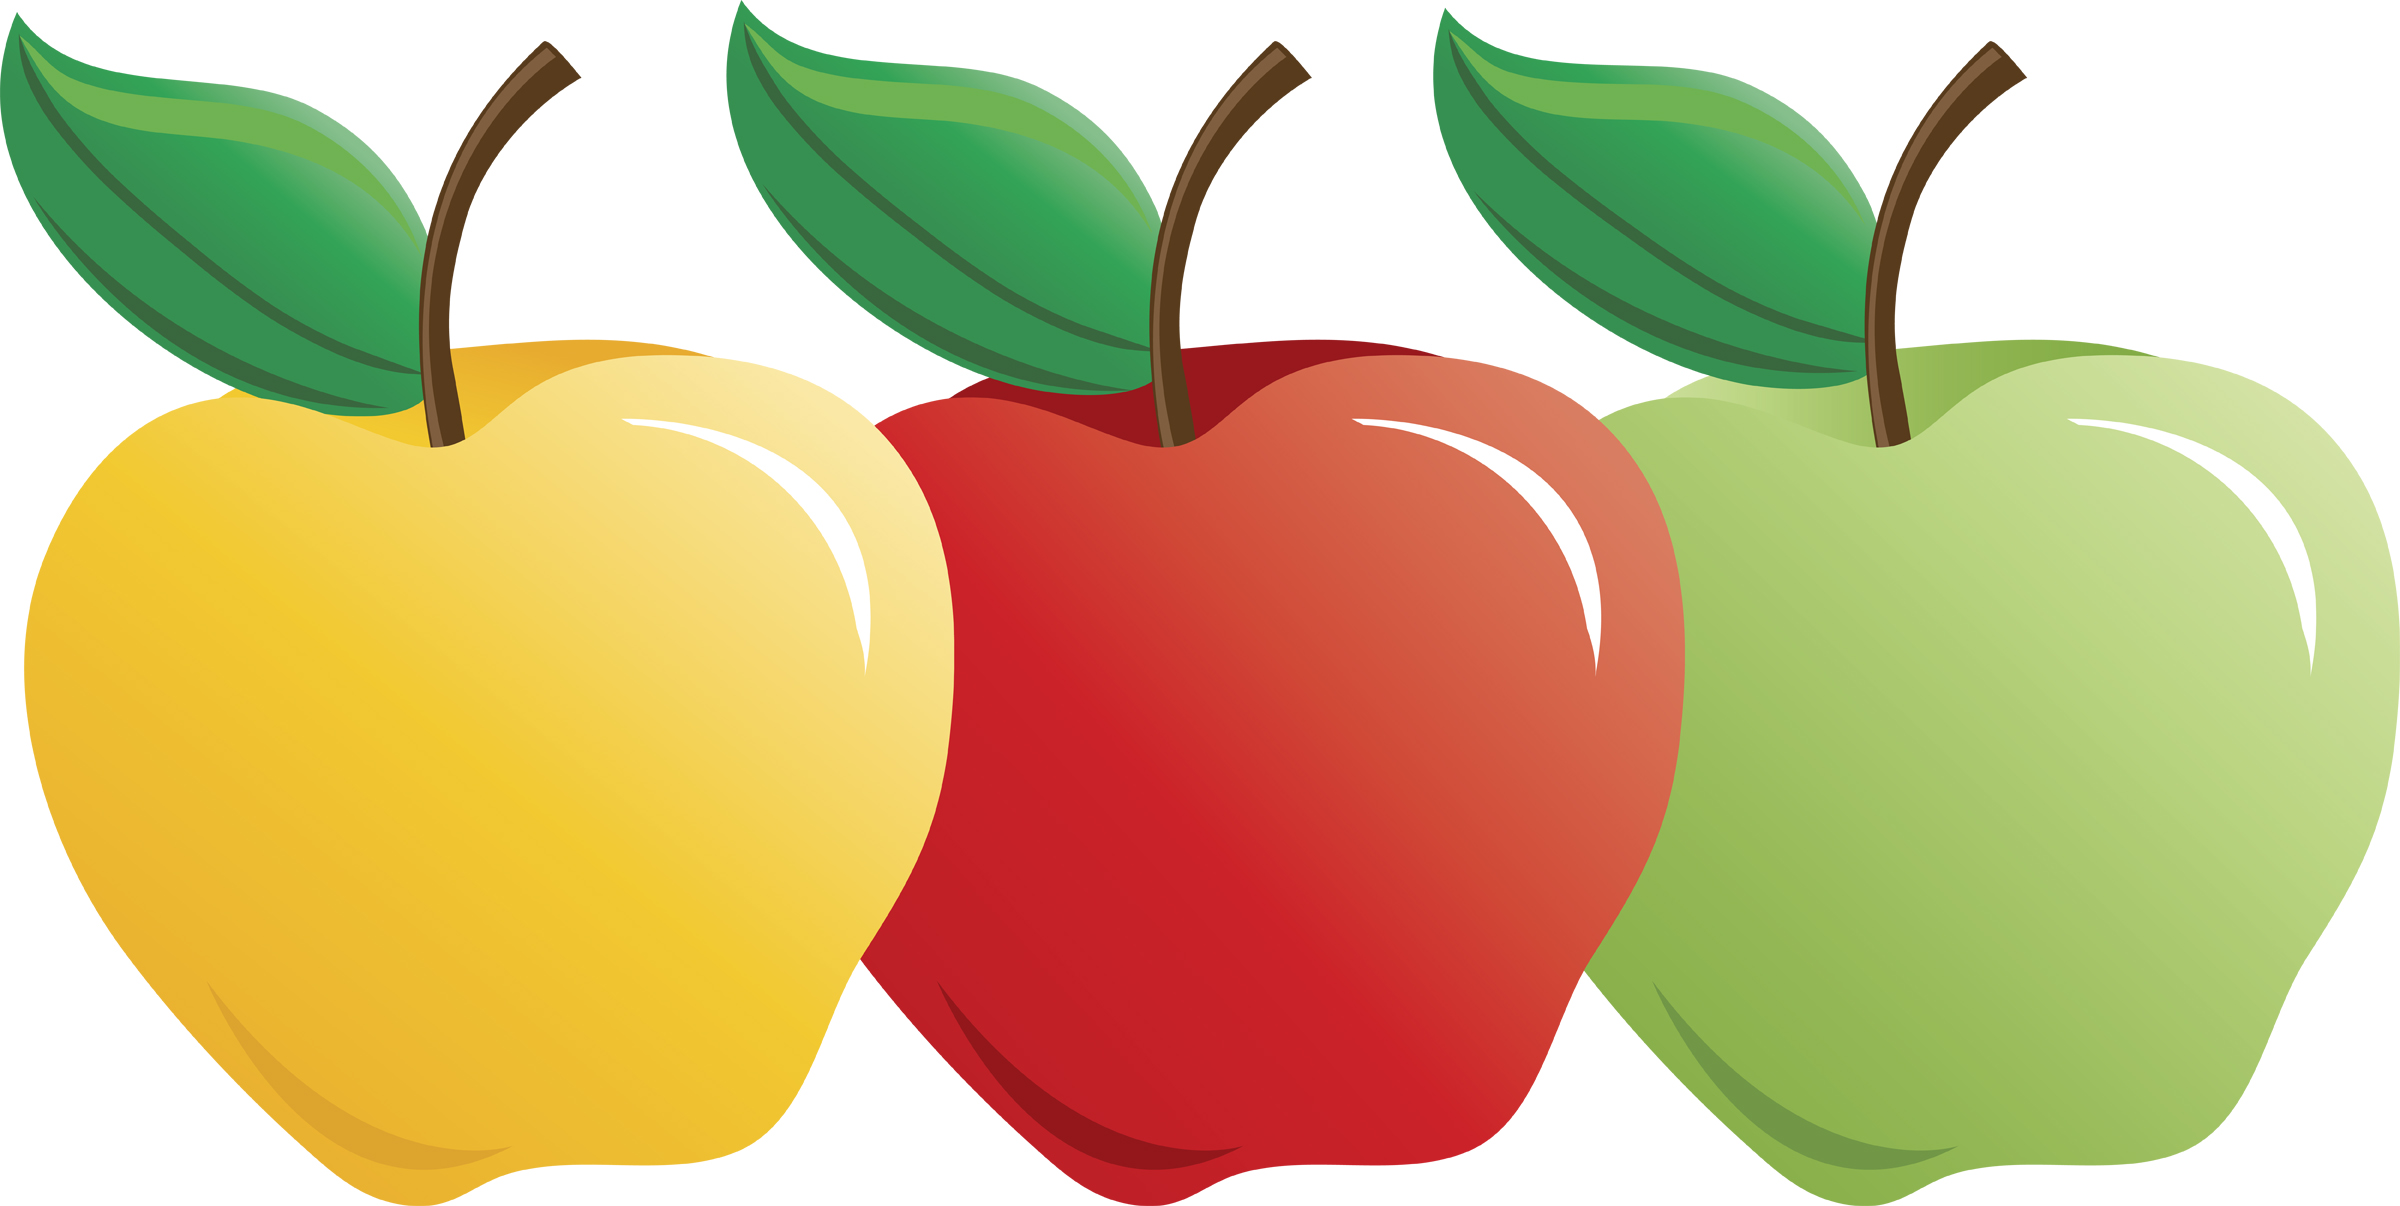 Clip Art Pictures Of Apples - .-Clip art pictures of apples - .-11